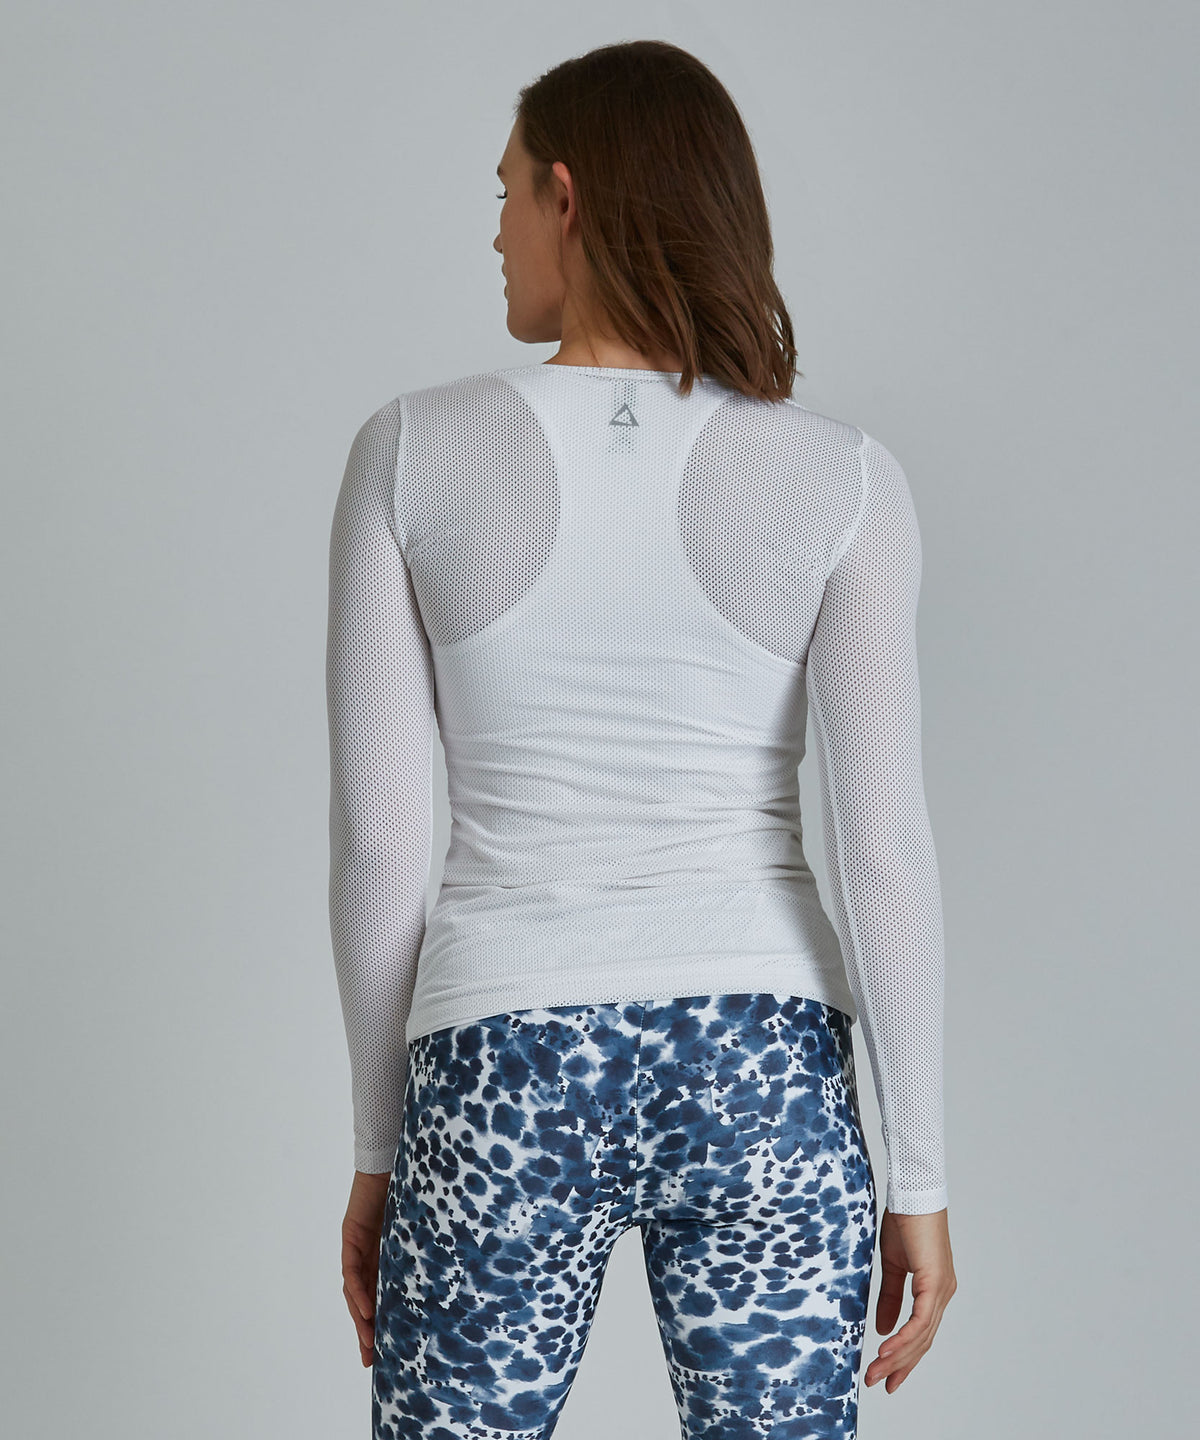 Laser Mesh Top - White White Laser Mesh Top - Women's Activewear Long Sleeve Top by PRISMSPORT